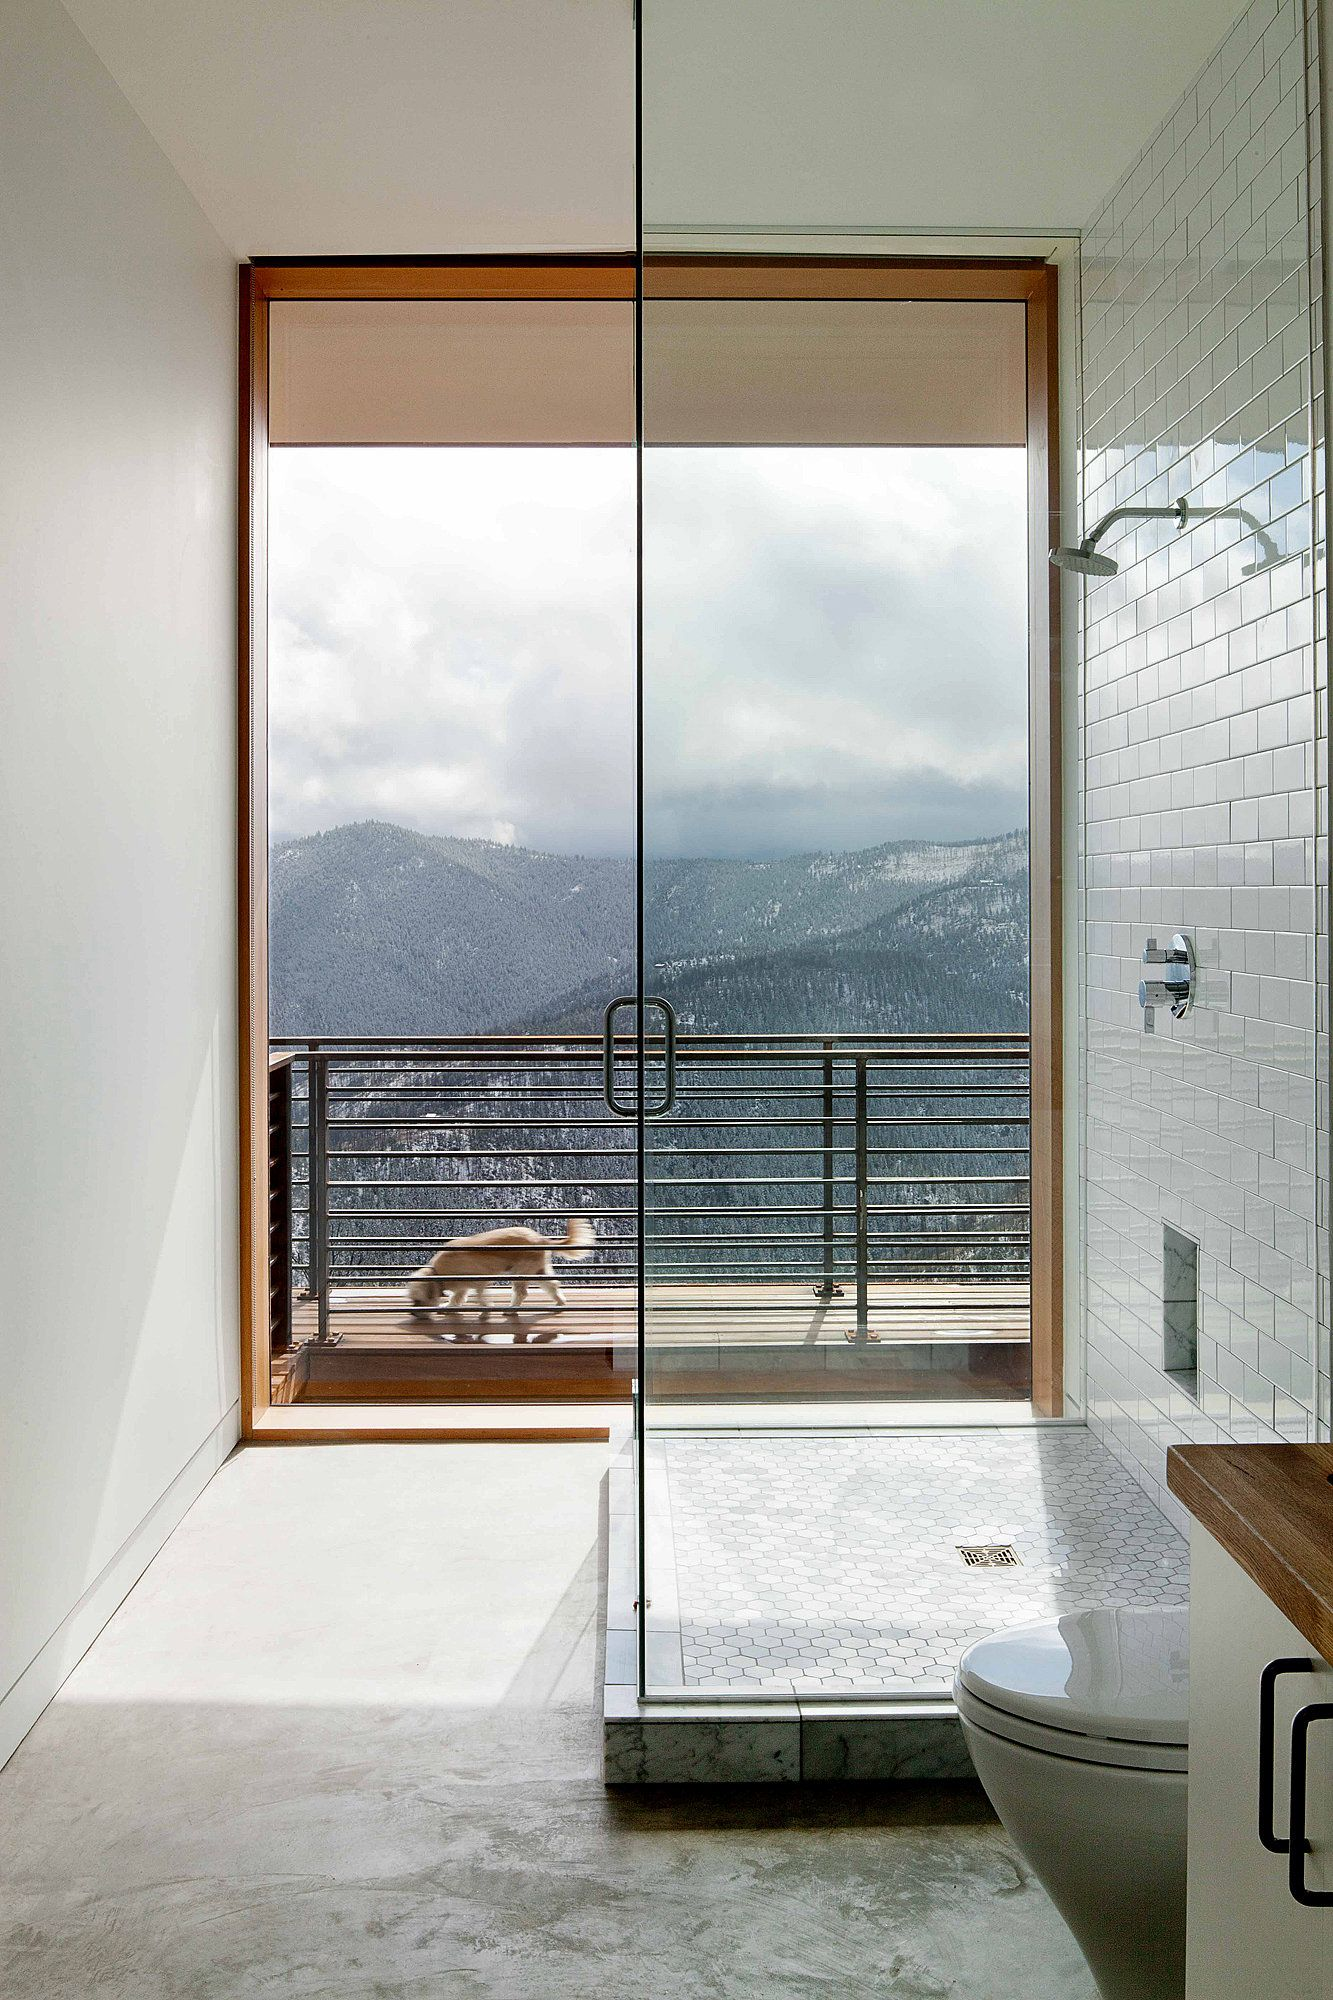 Bathroom Design Of Fourmile Sky House   Colorado   Through A Window #window.